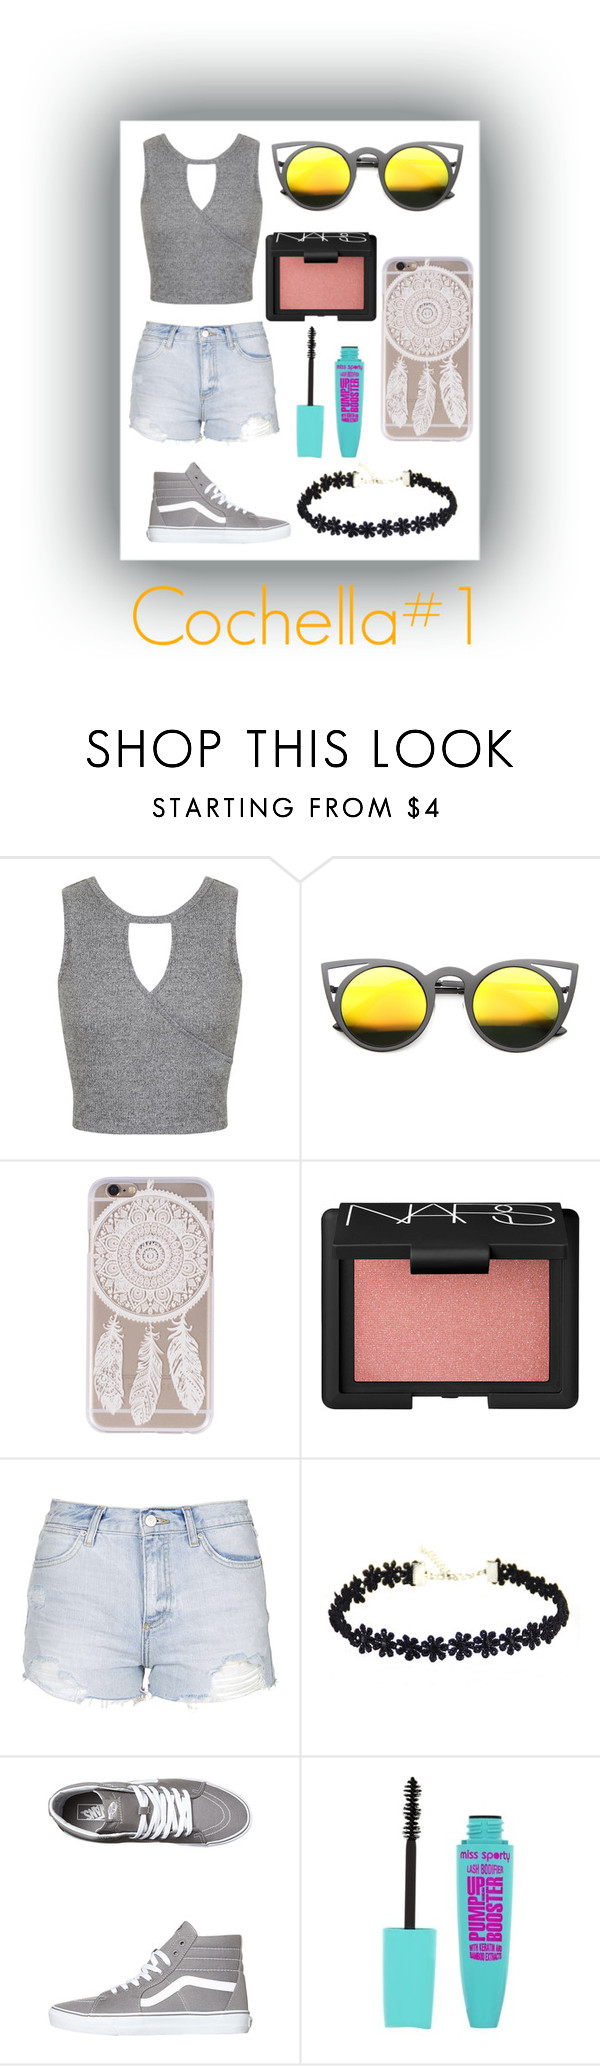 """Cochella#1"" by elinajuslin ❤ liked on Polyvore featuring Miss Selfridge, NARS Cosmetics, Topshop and Vans"